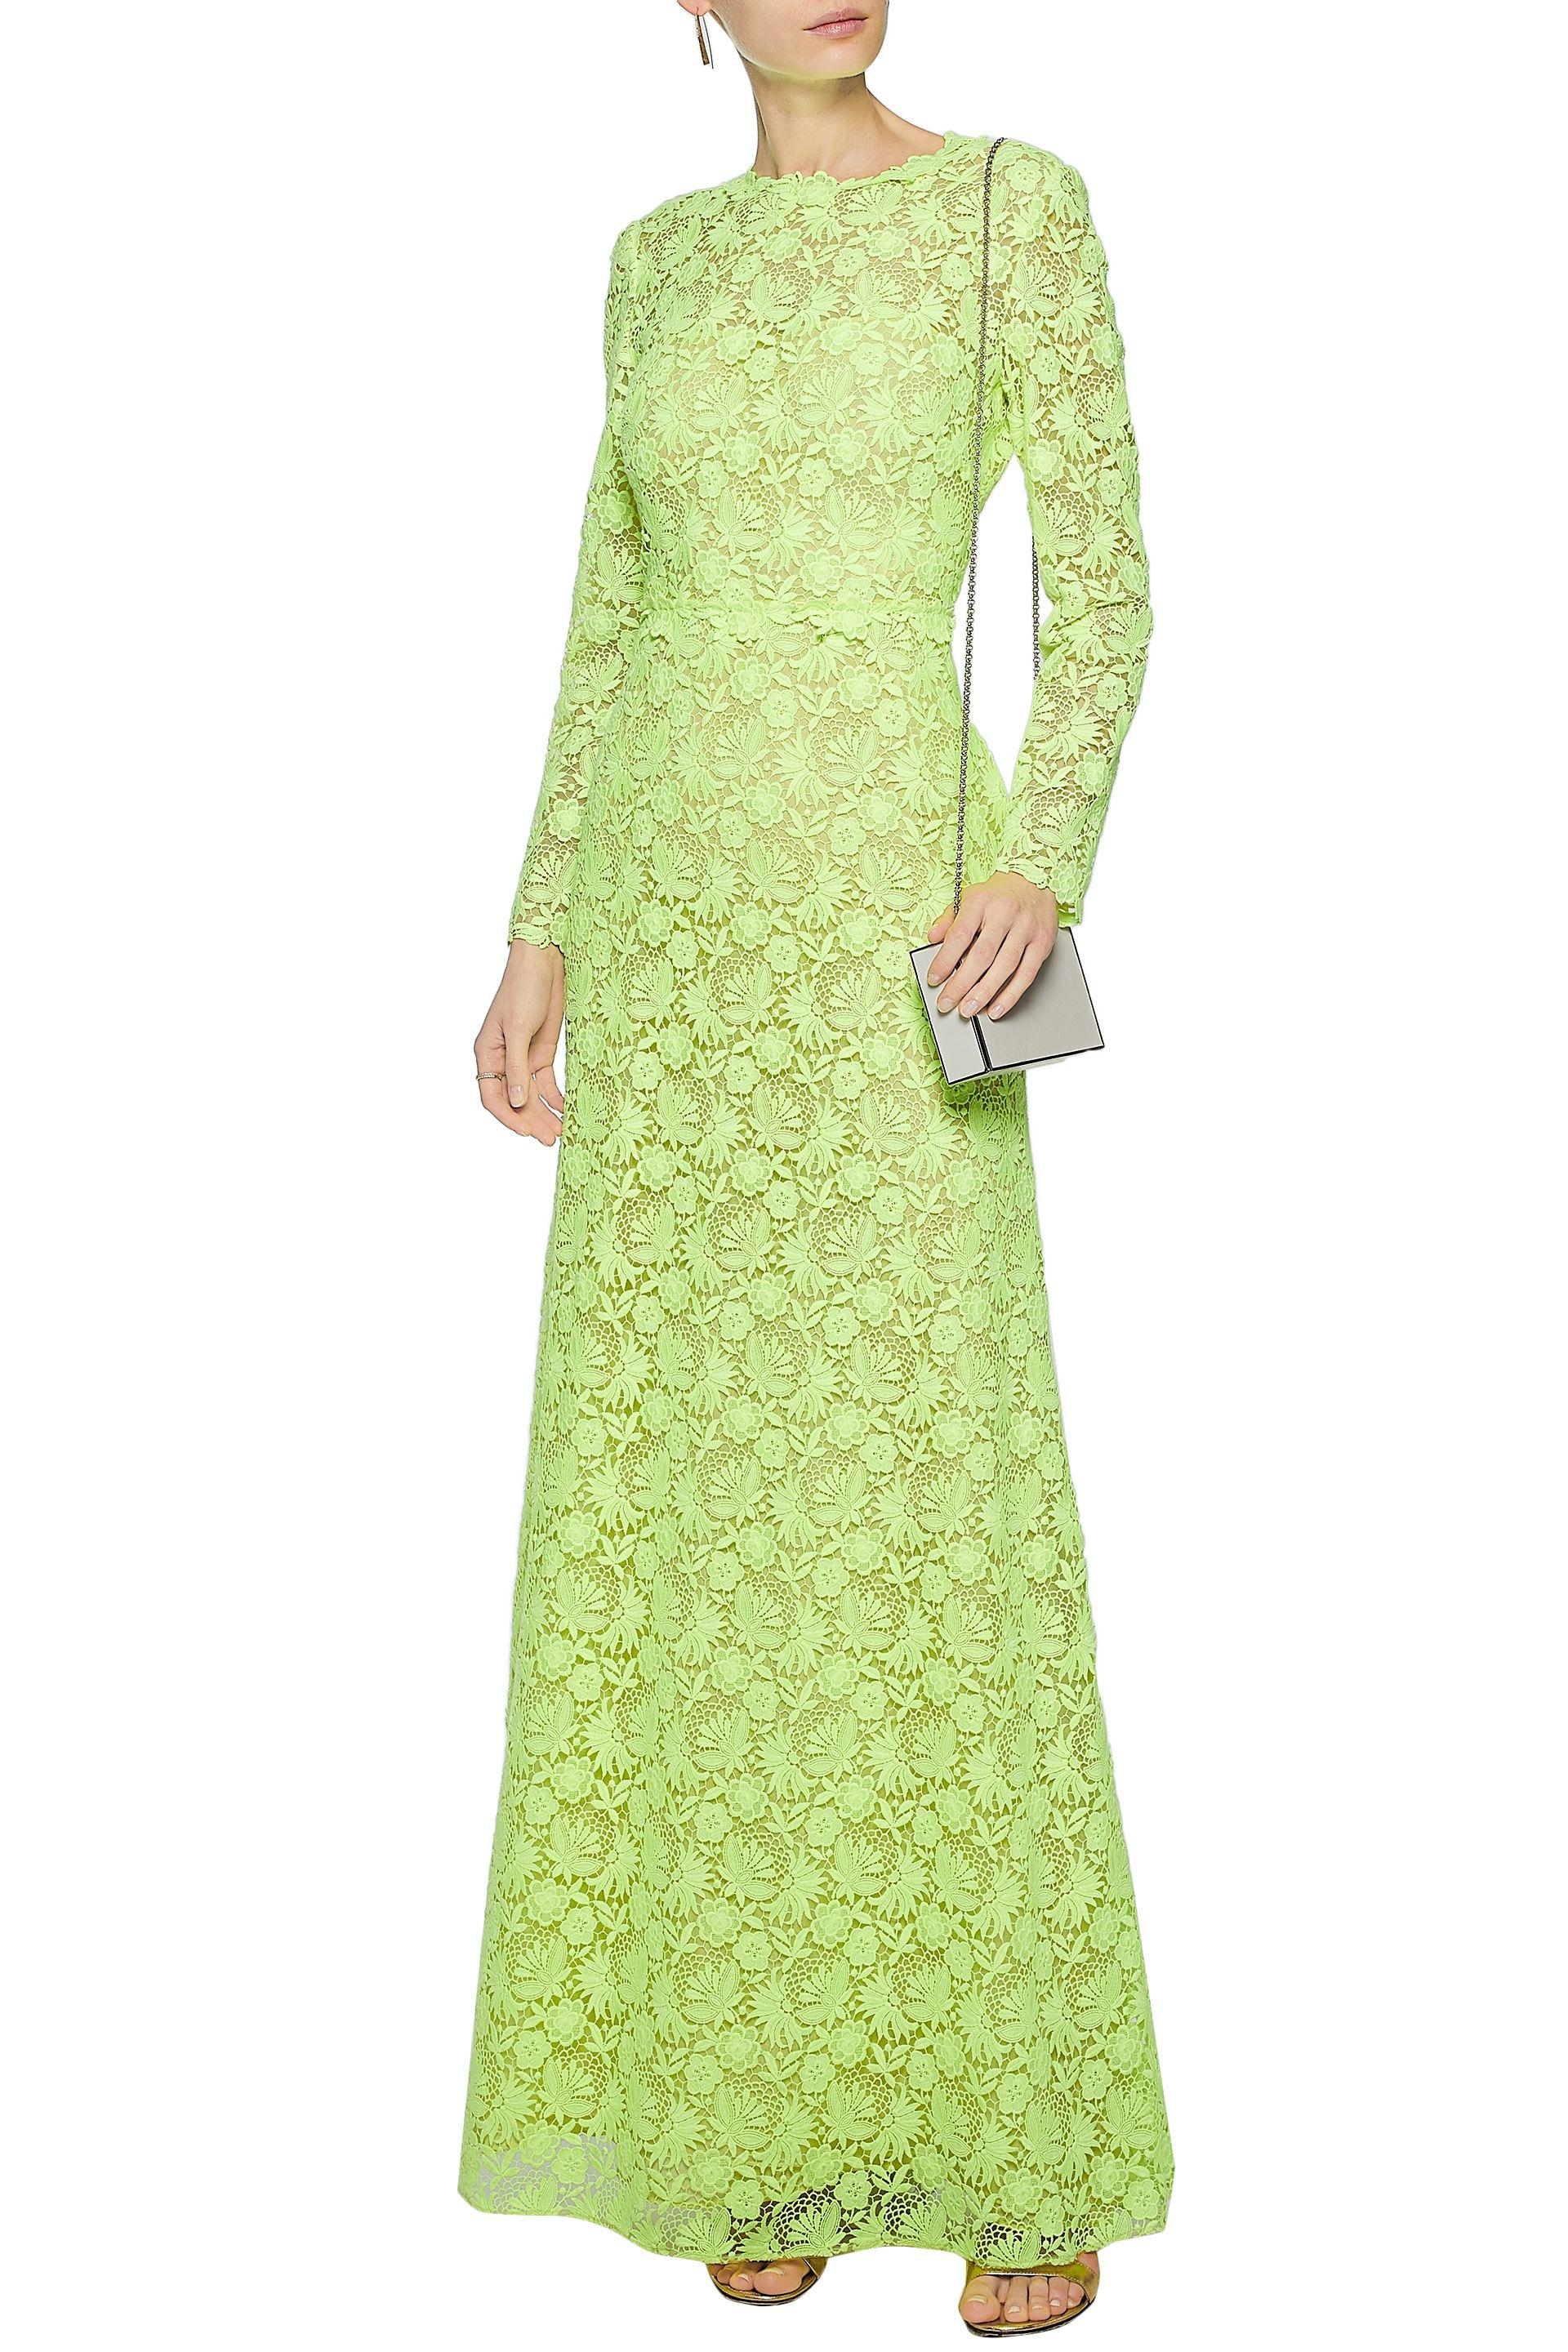 Lyst - Valentino Neon Guipure Lace Gown Bright Yellow in Yellow